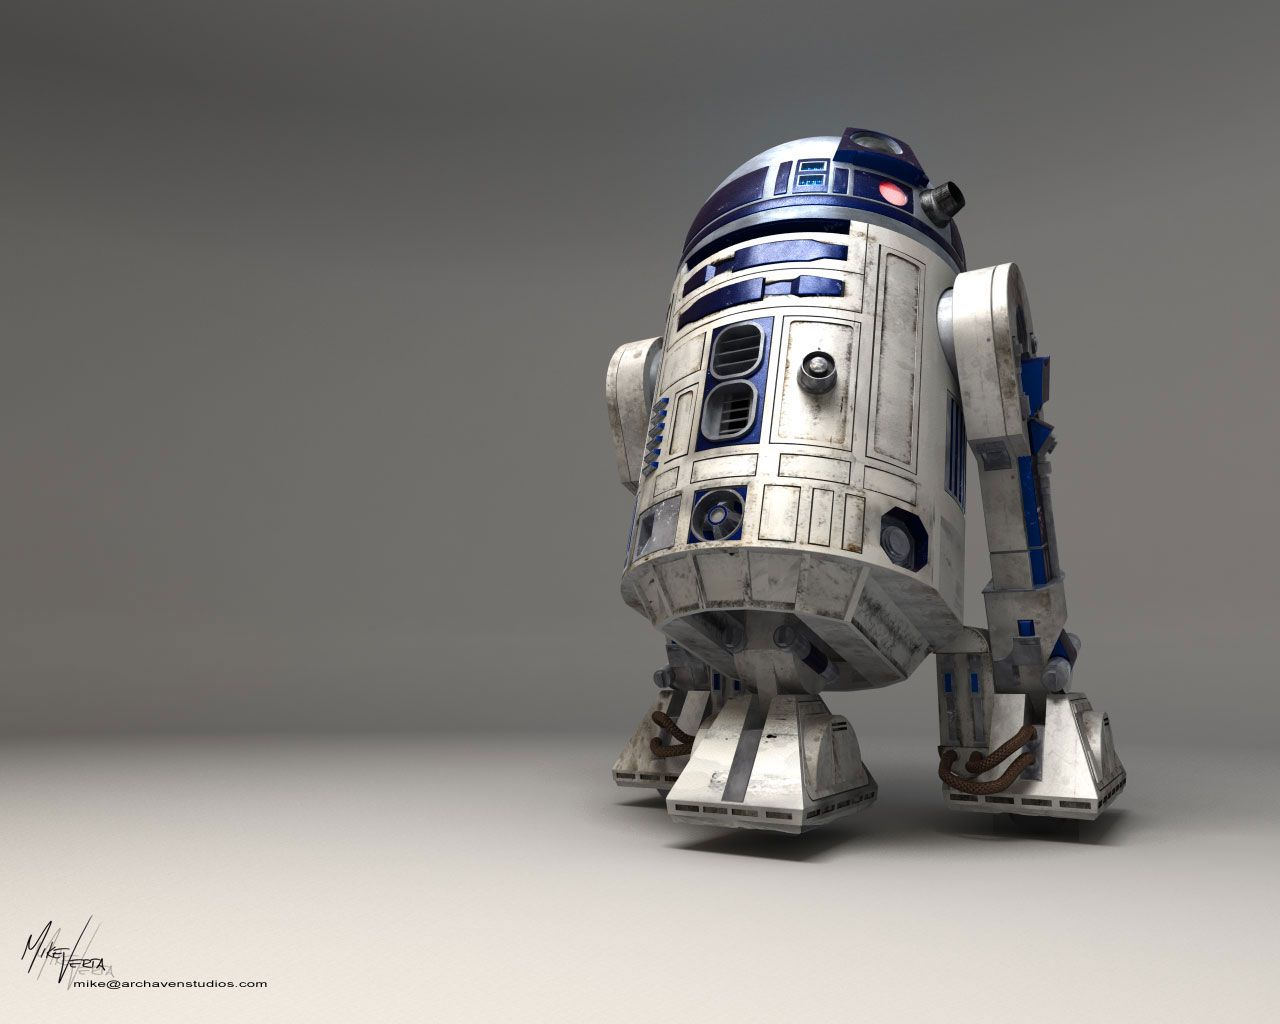 STAR WARS Galactic Heroes R2-D2 astromech droid